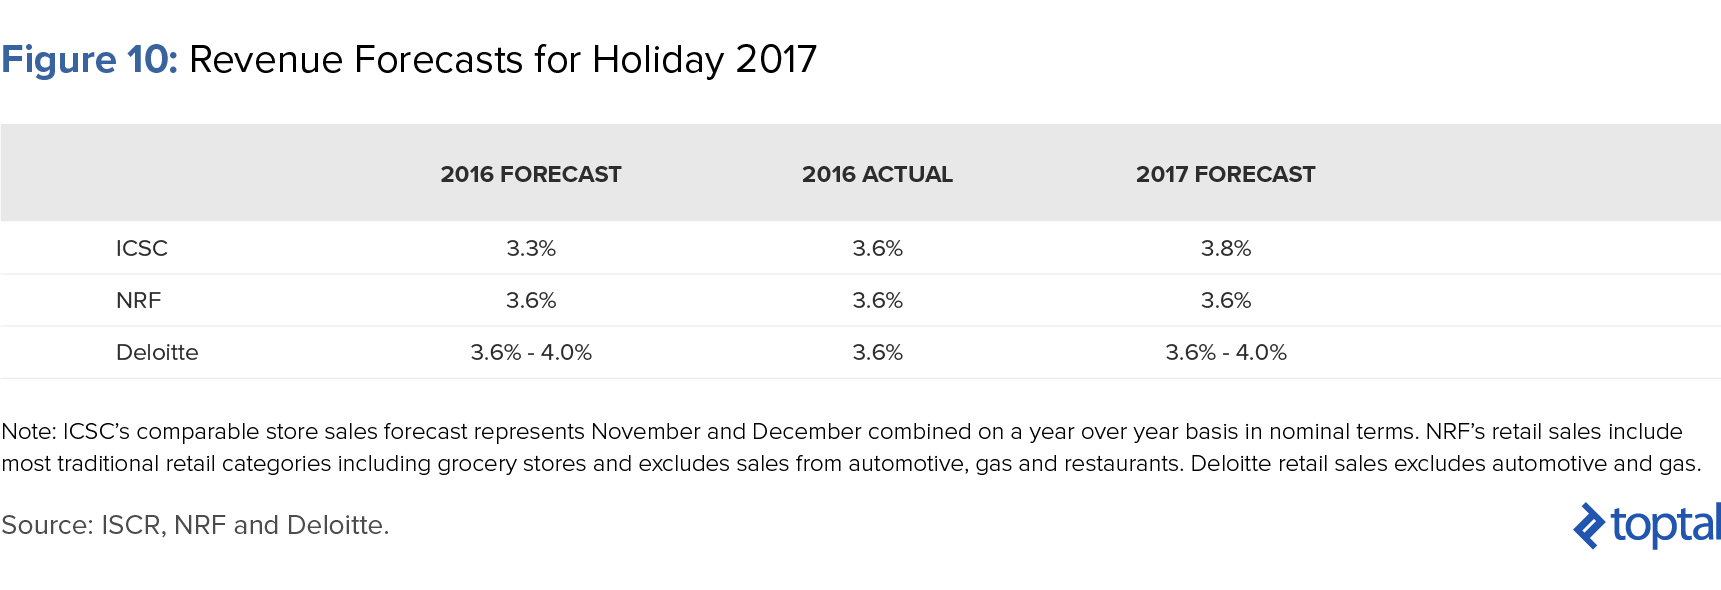 Figure 10: Revenue Forecasts for Holiday 2017